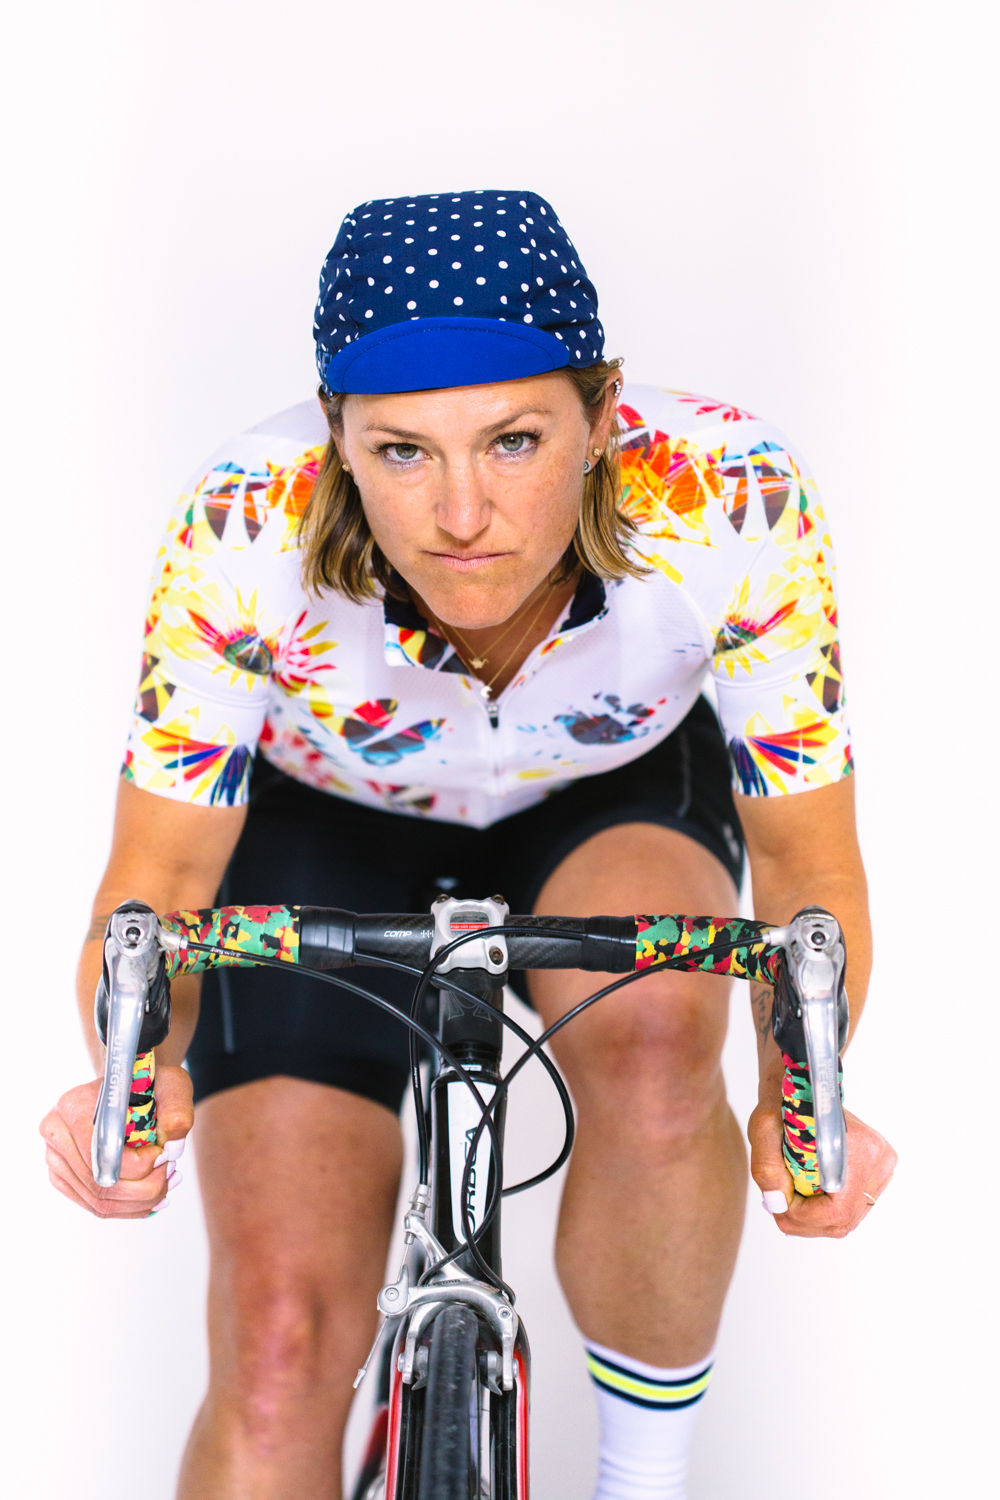 Cycling Apparel for Women by Femme/Velo